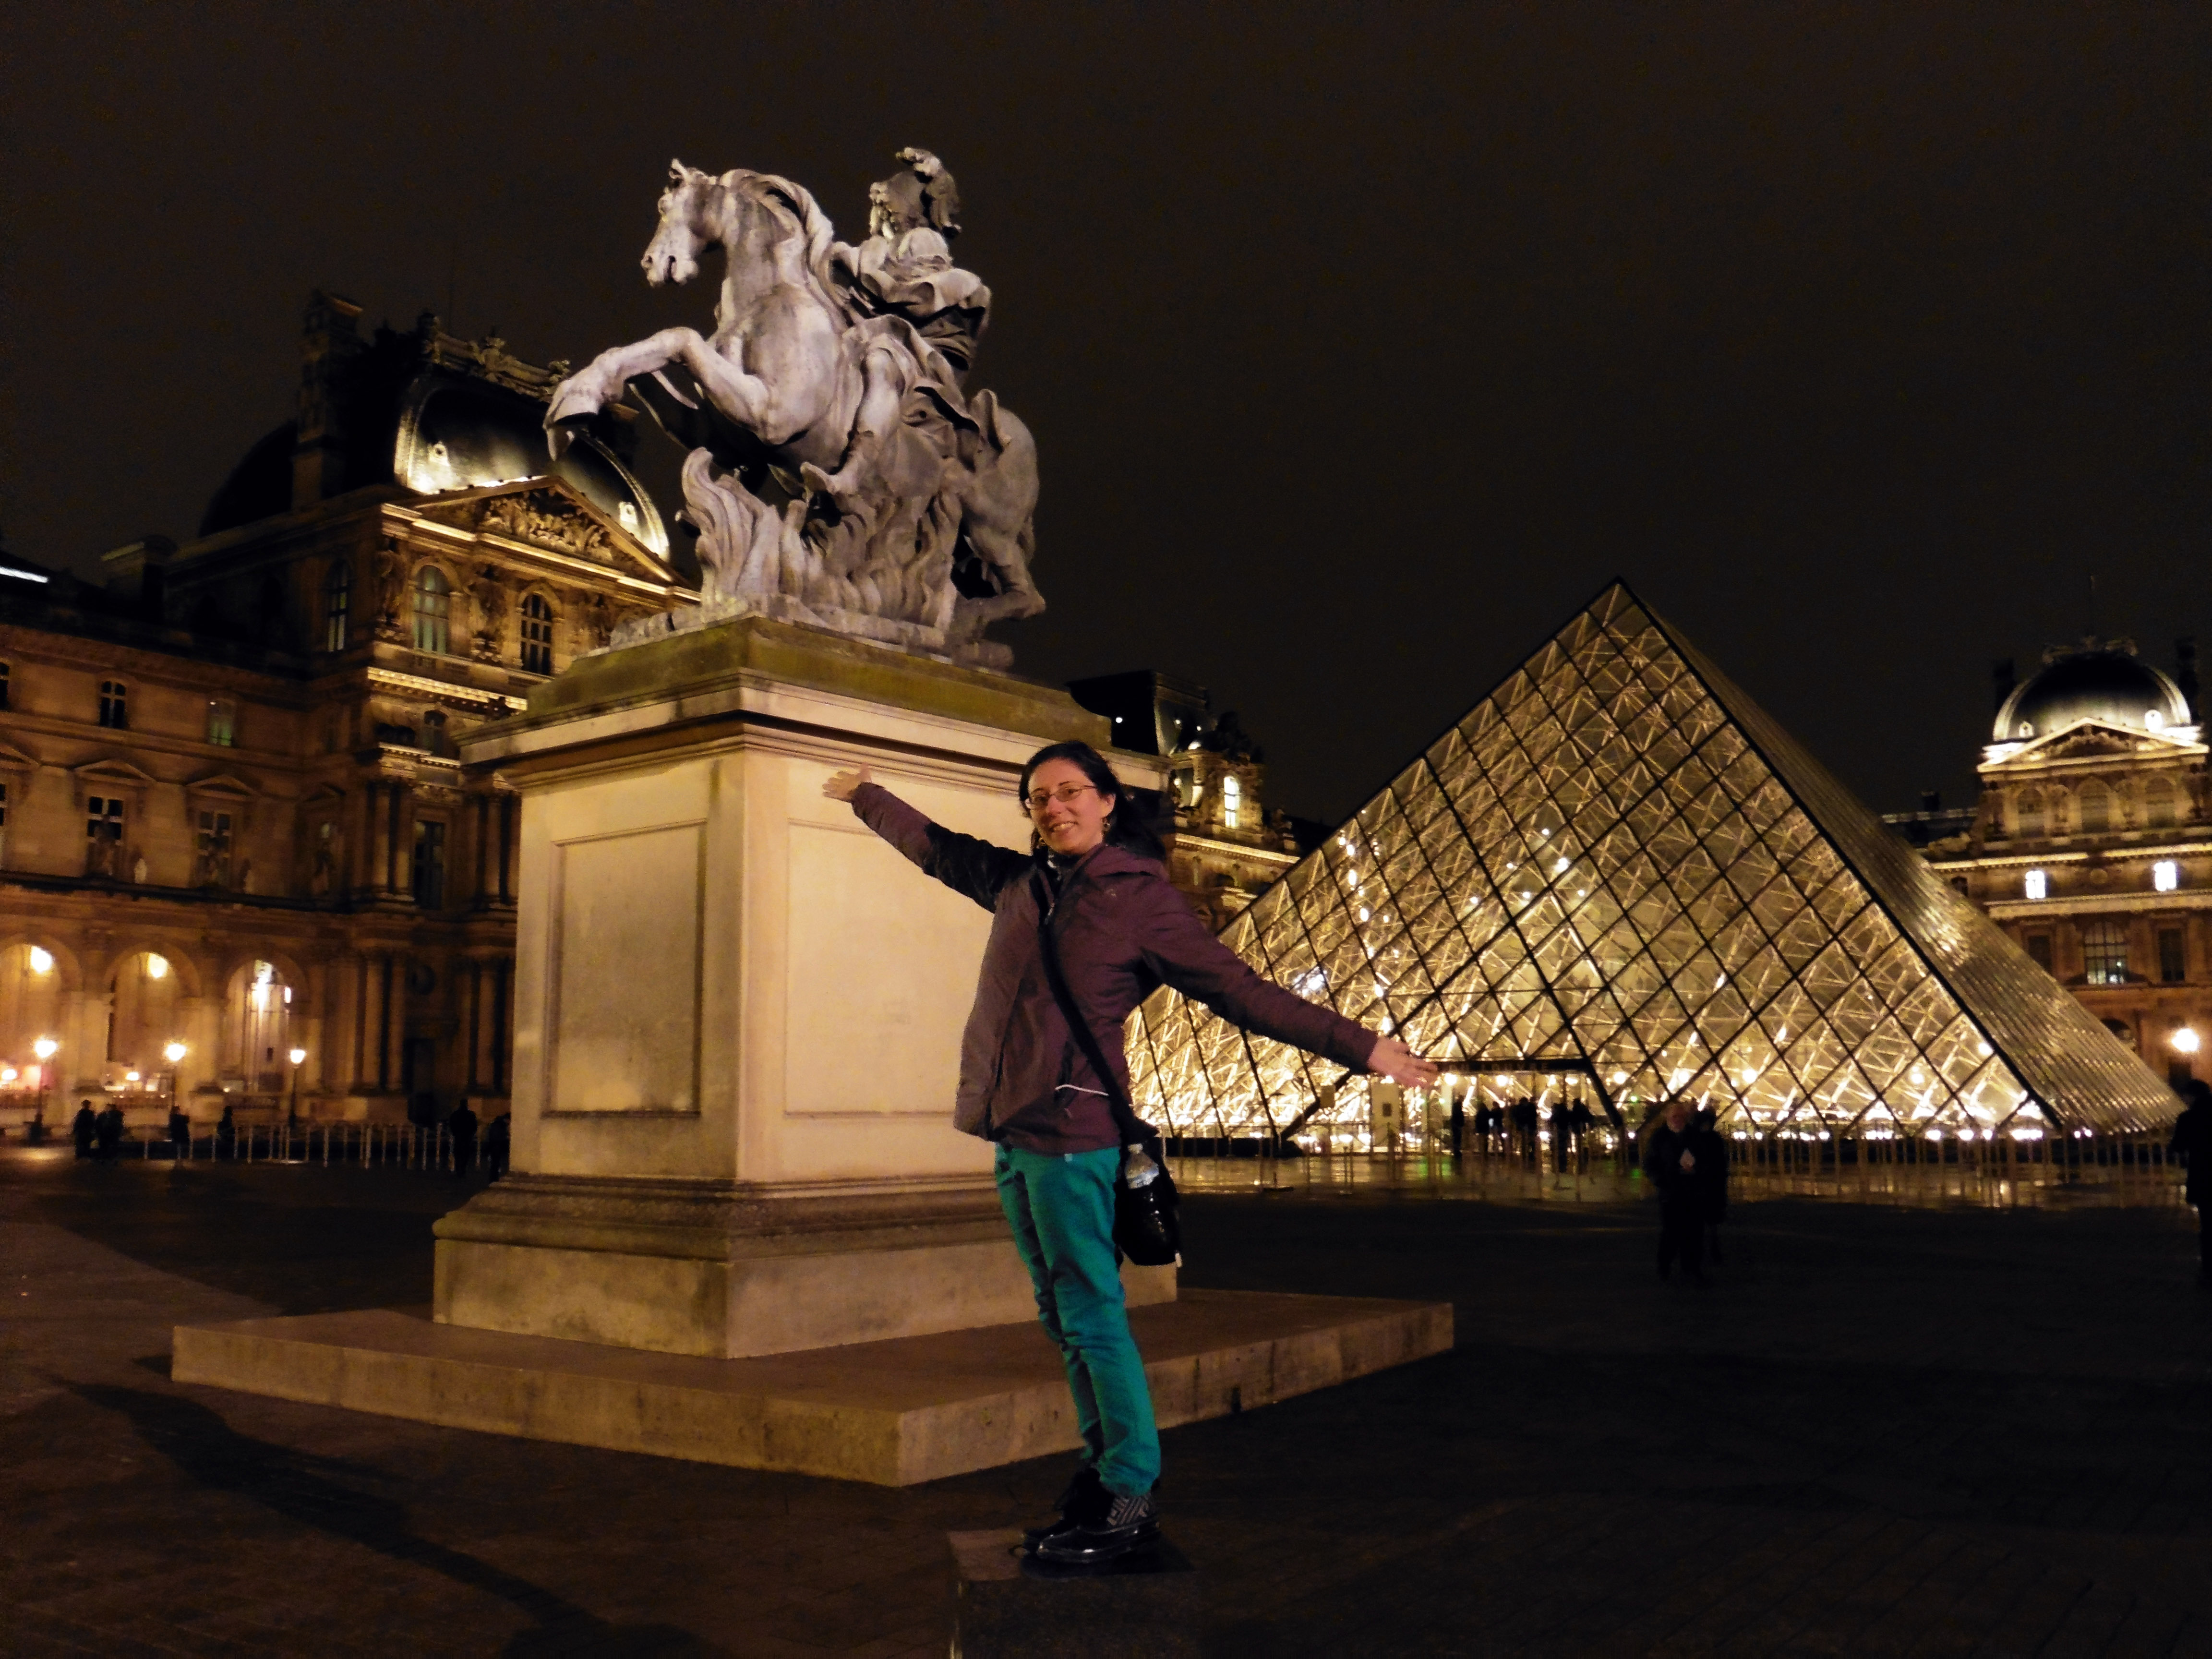 Night time at the Louvre Museum in Paris, France